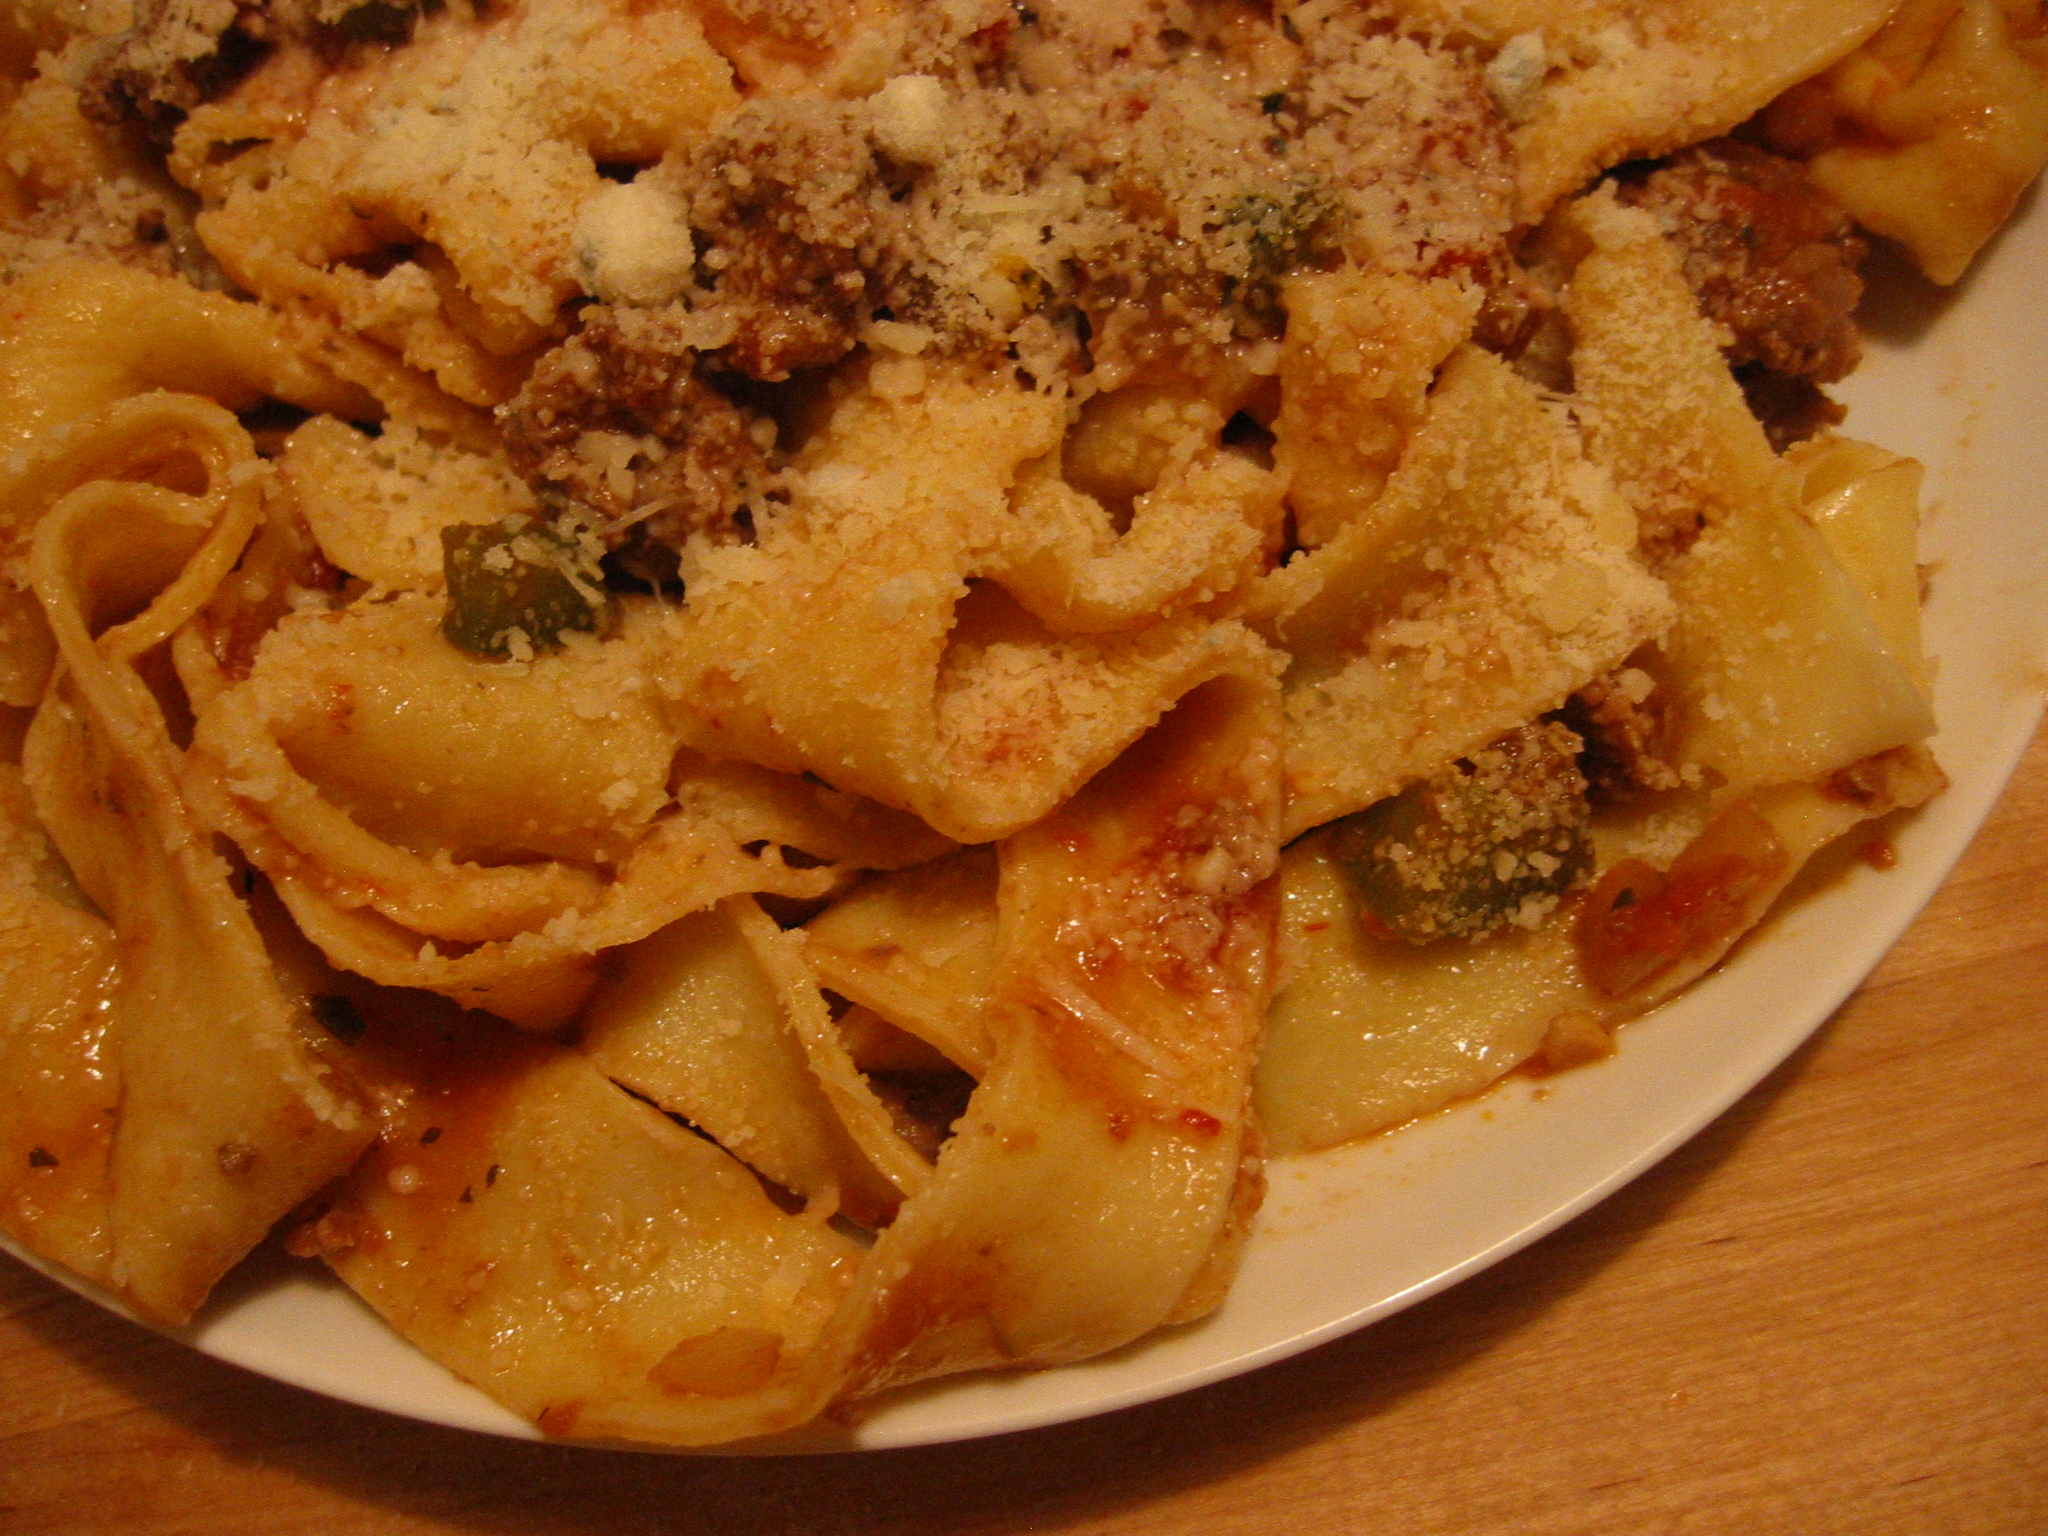 I threw together a quick beef bolognese sauce with ingredients that I had on hand.